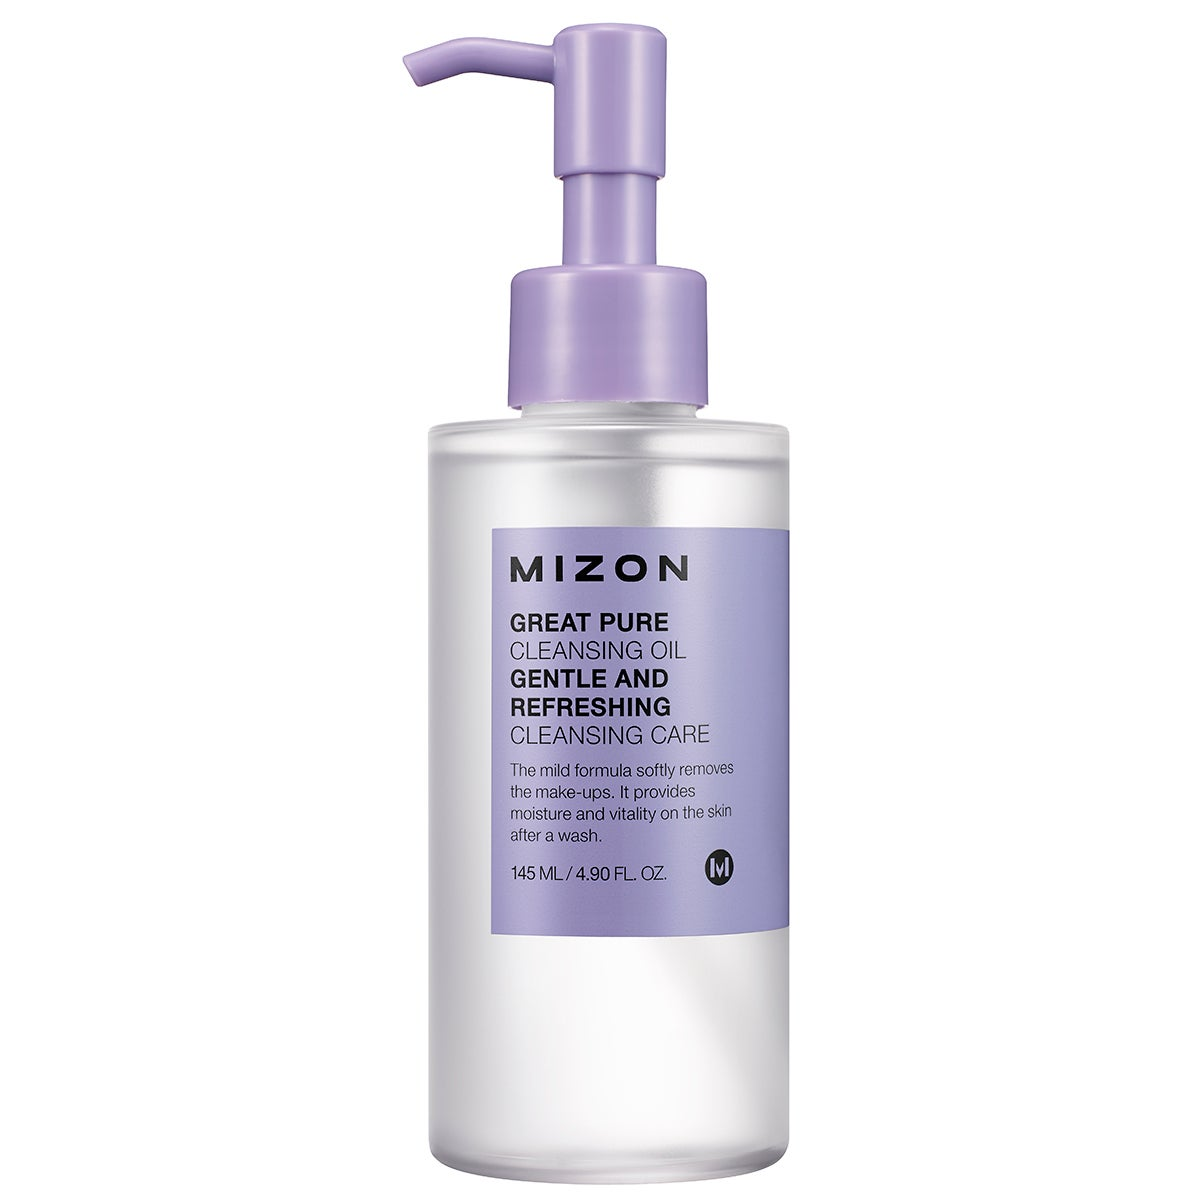 Mizon Great Pure Cleansing Oil